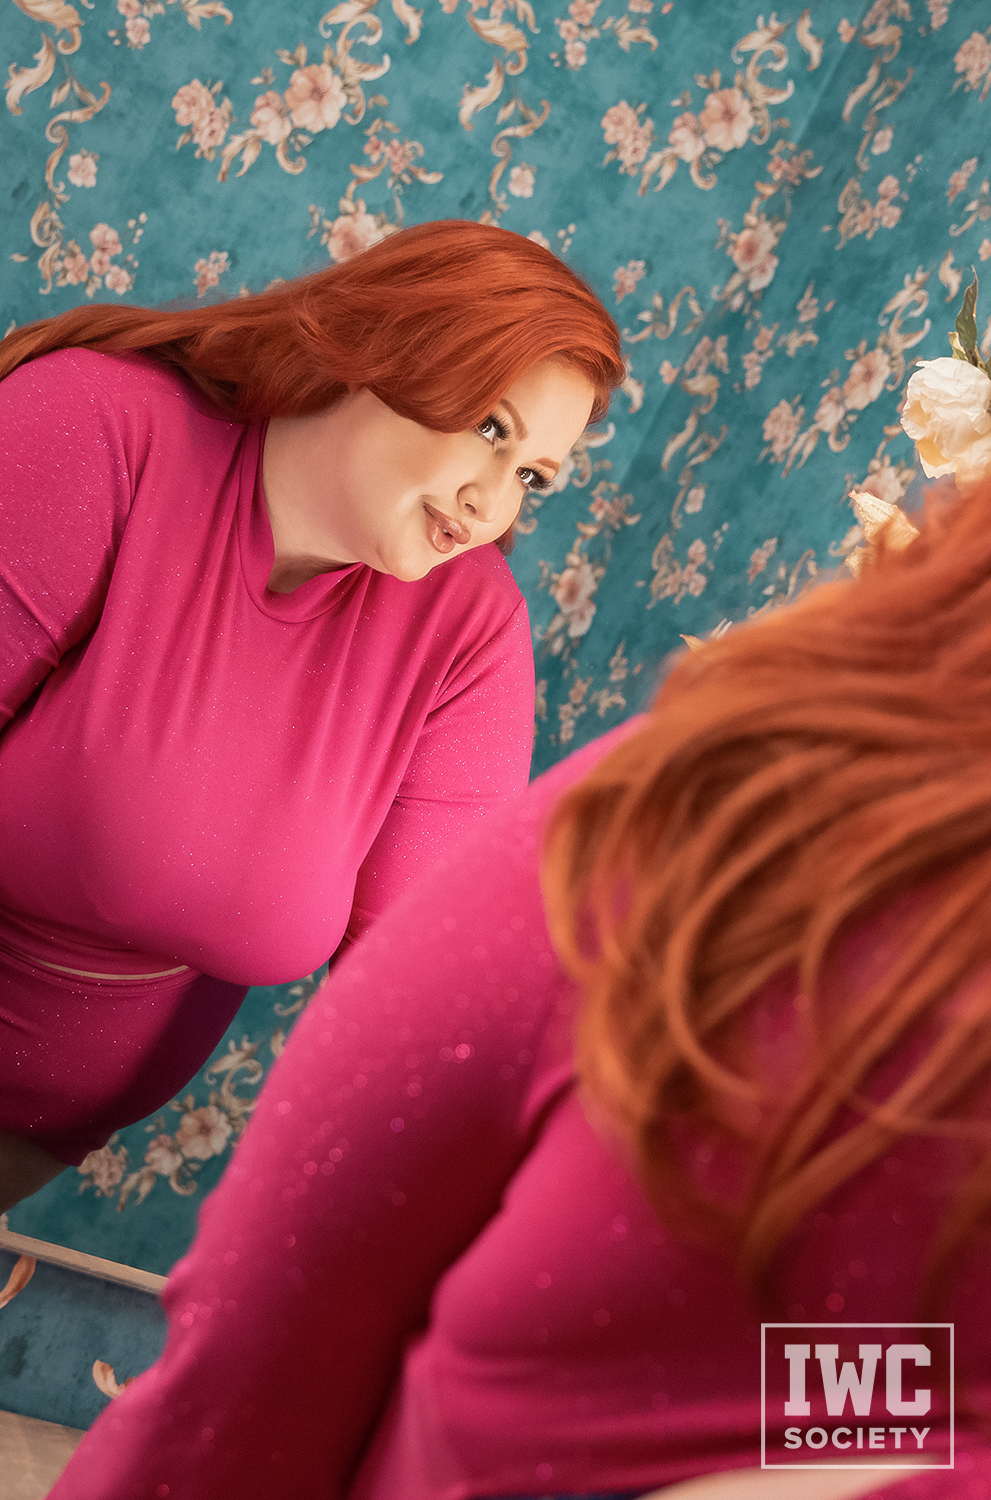 Eliza Allure BBW in bright dress and red hair staring at reflection